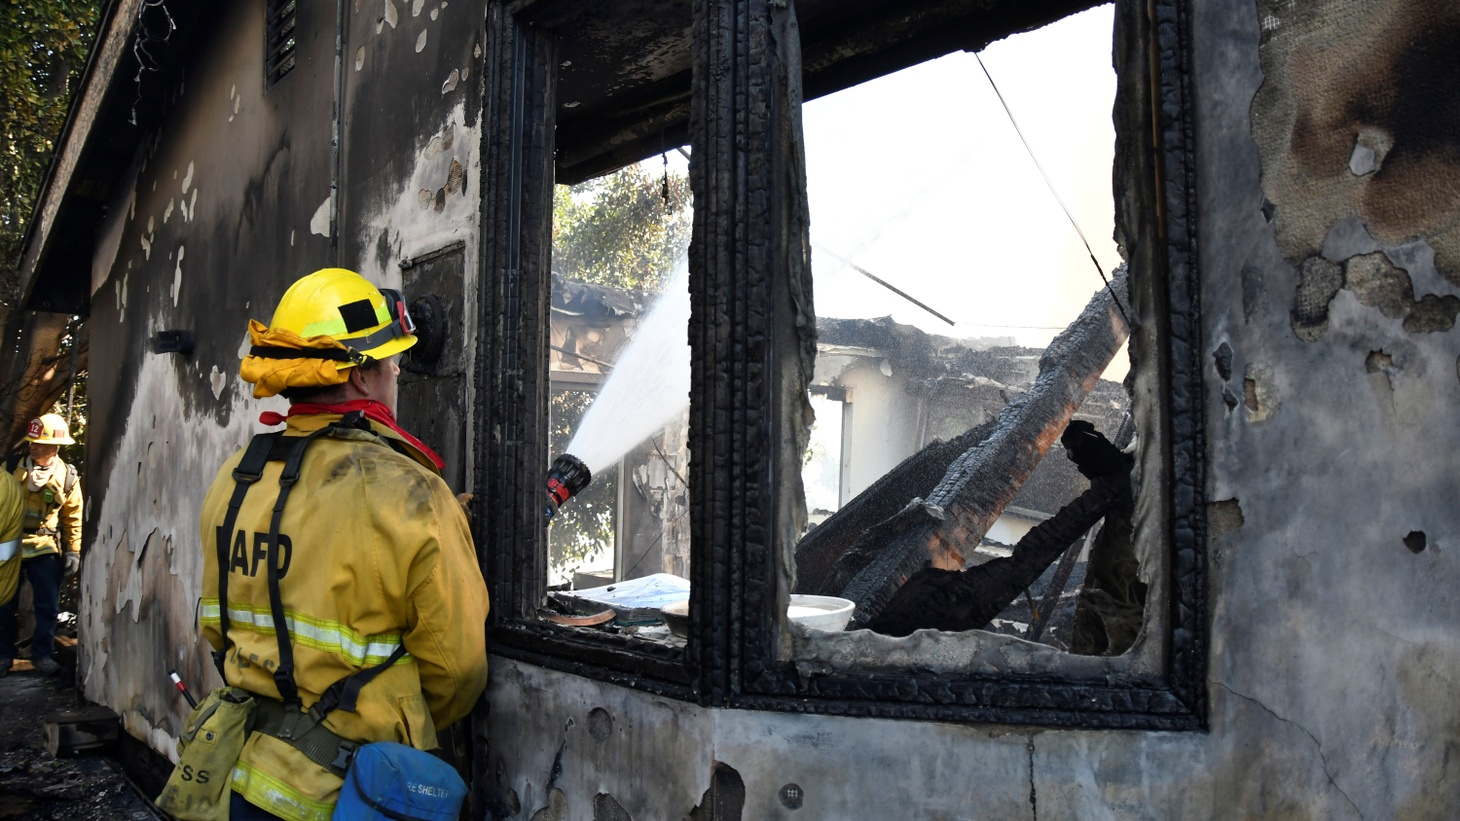 A firefighter douses water on a house after it was burned by the wind-driven Getty Fire in West Los Angeles, California, U.S. October 28, 2019.